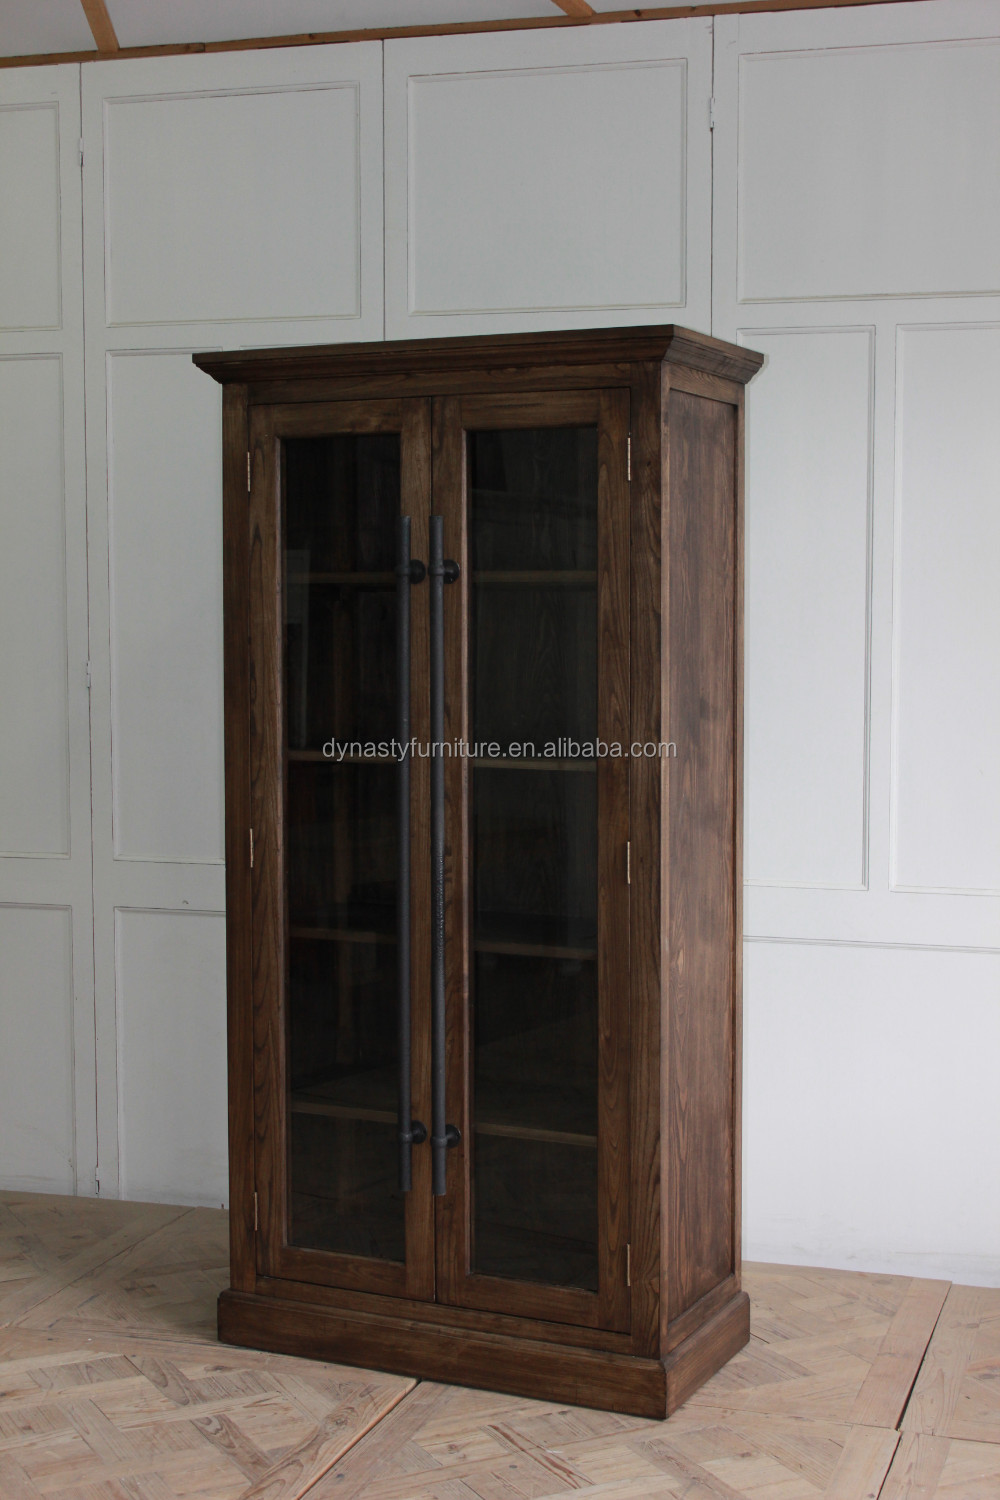 Hot Sale Antique Solid Wood Glass Door Kitchen Cabinet Buy Kitchen Cabinet Wood Kitchen